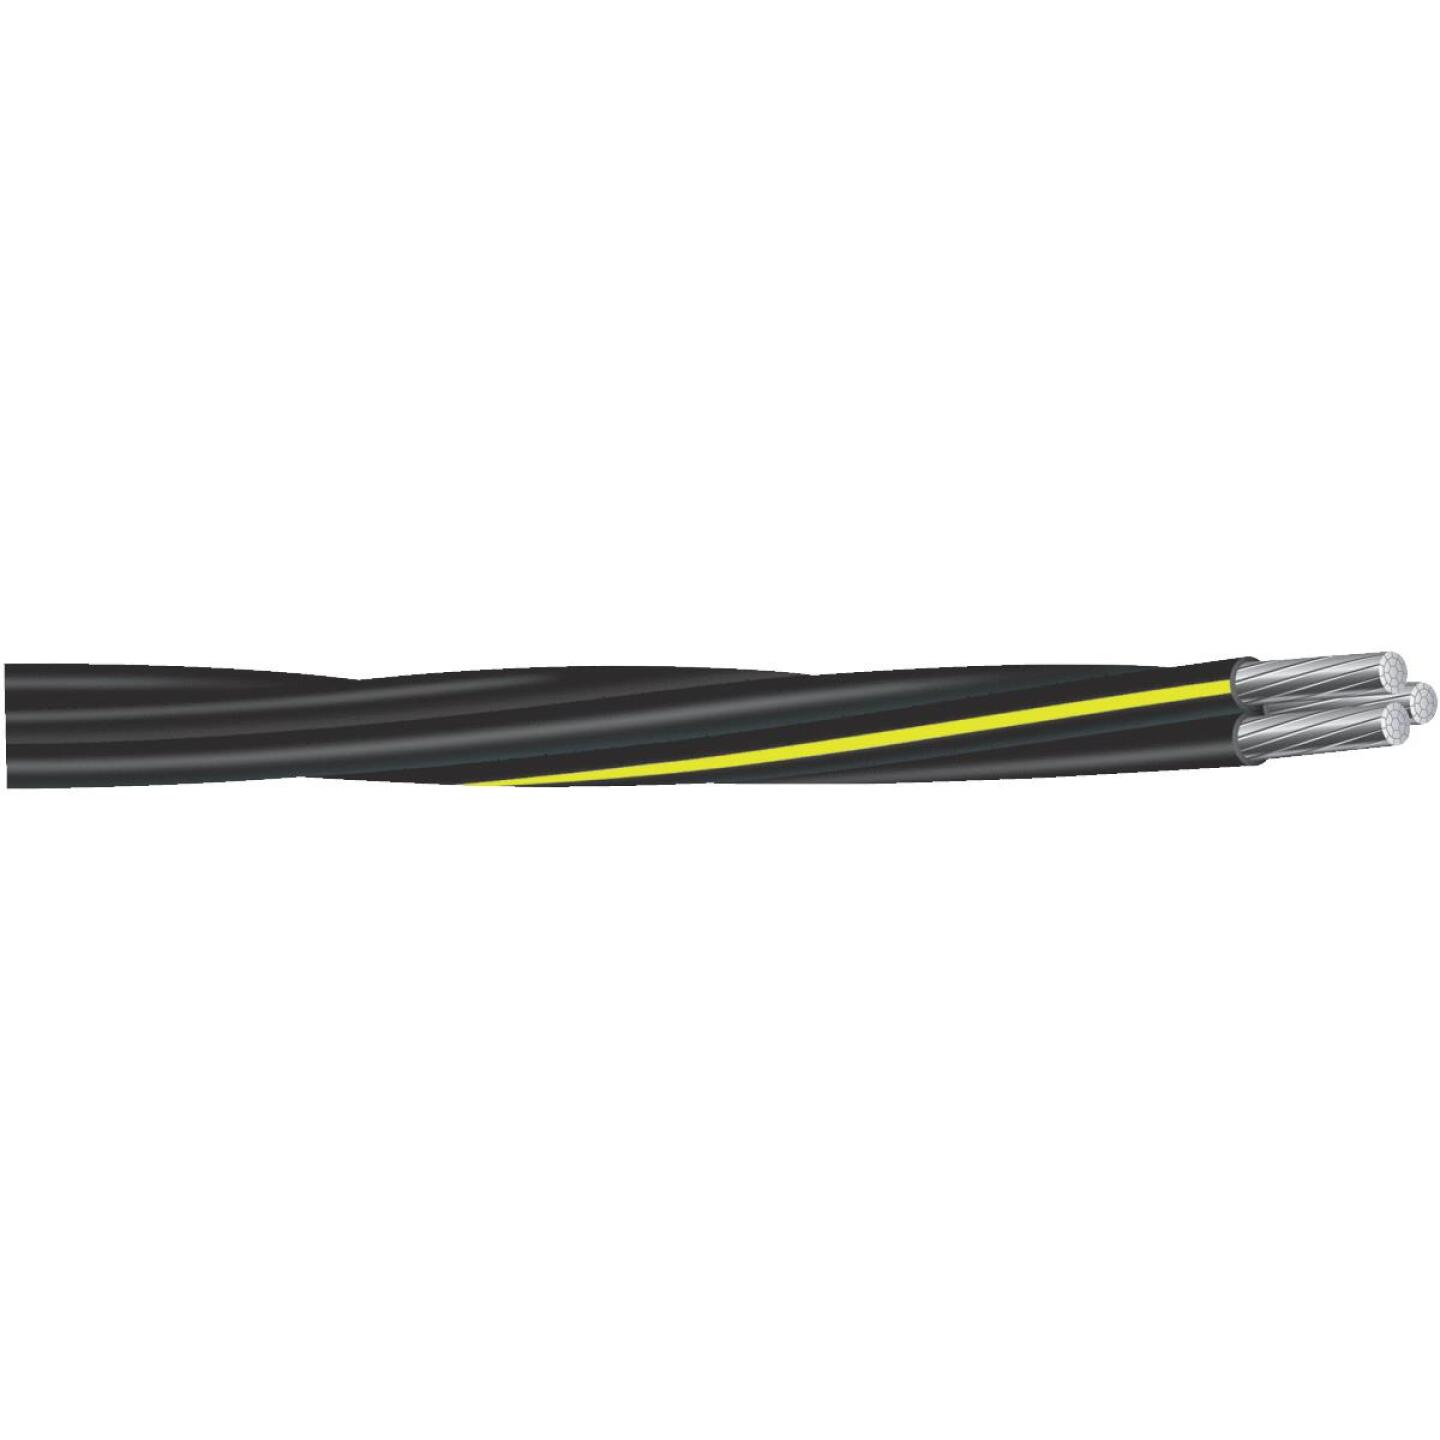 Southwire 500 Ft. 4/0-4/0-2/0 AWG 3-Conductor Underground Service Entrance Cable Image 1